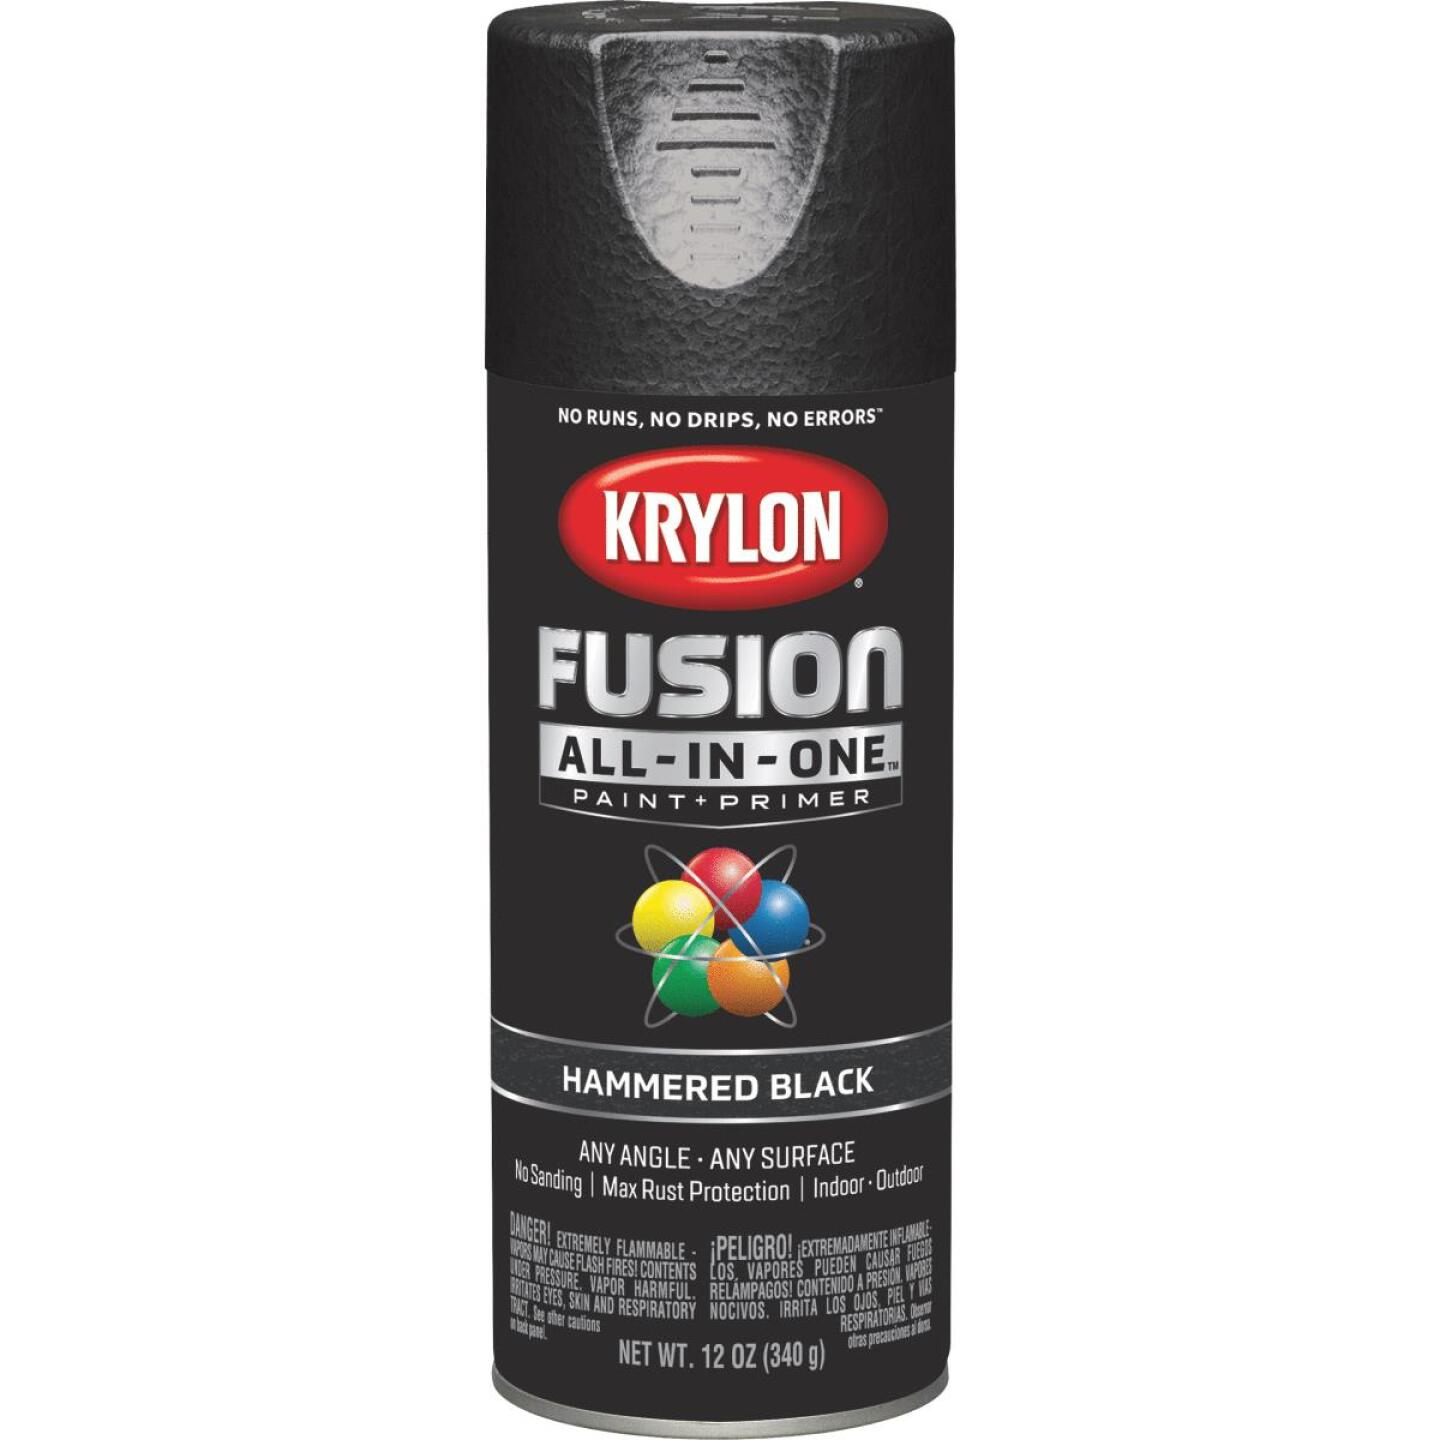 Krylon Fusion All-In-One Hammered Spray Paint & Primer, Black Image 1